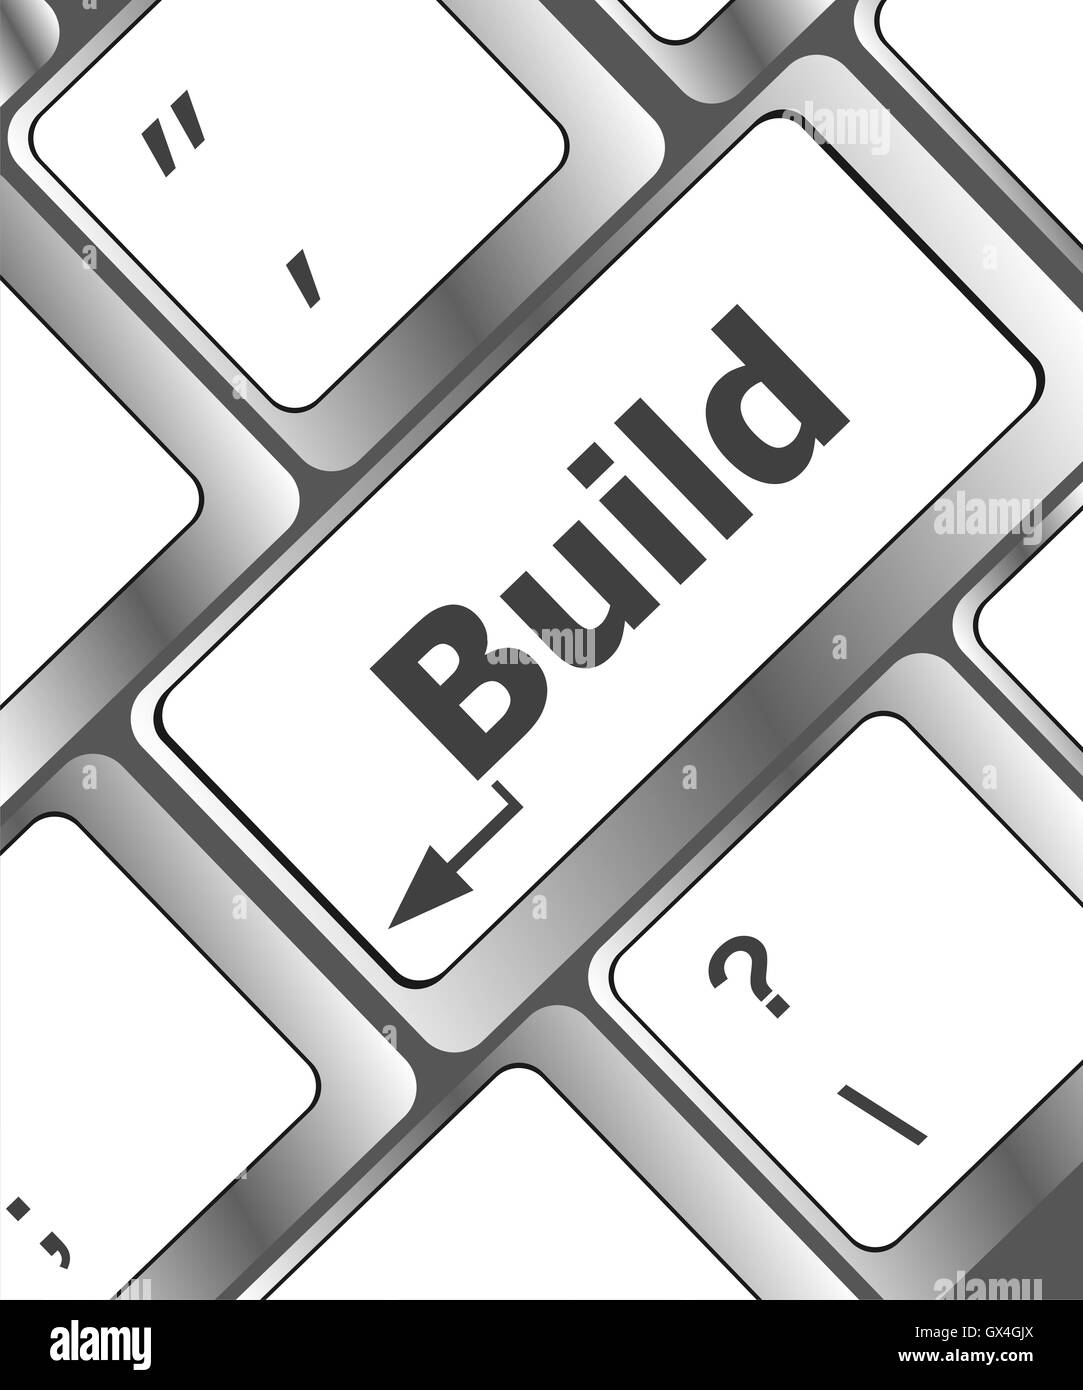 Computer keyboard with Build key. business concept Stock Photo